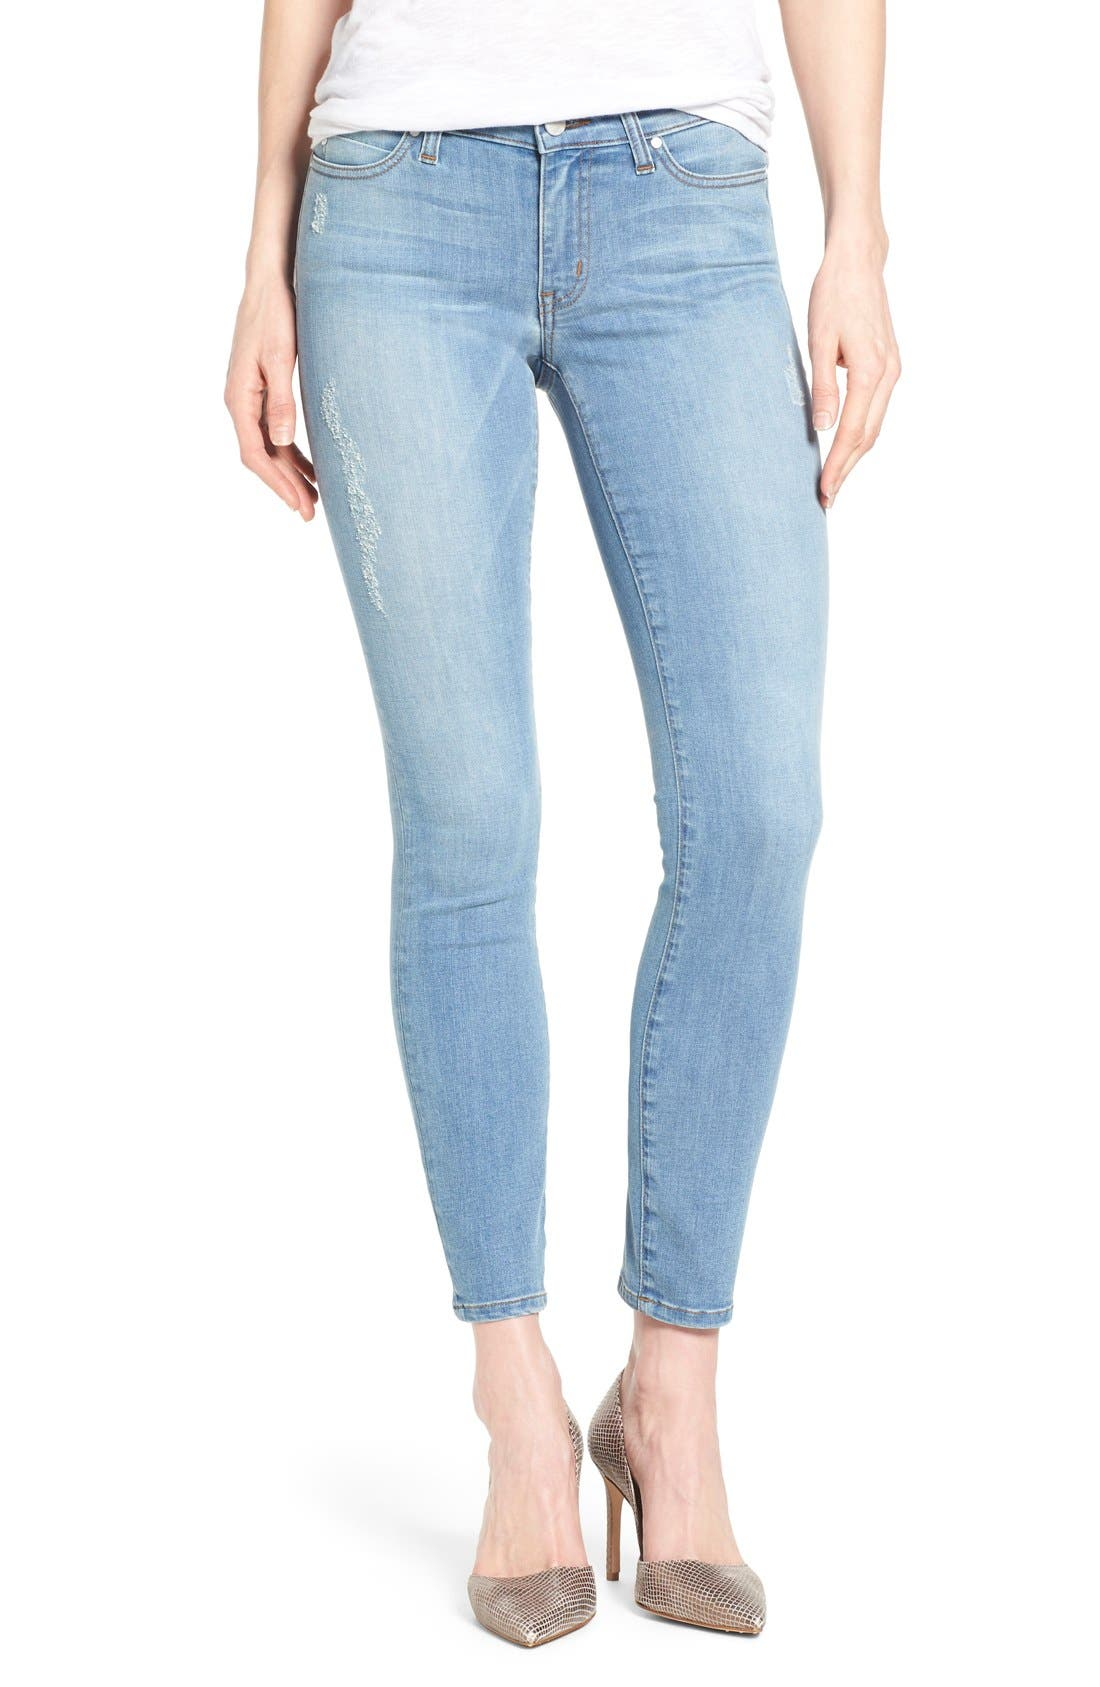 Alternate Image 1 Selected - Mavi Jeans 'Adriana' Distressed Stretch Skinny Ankle Jeans